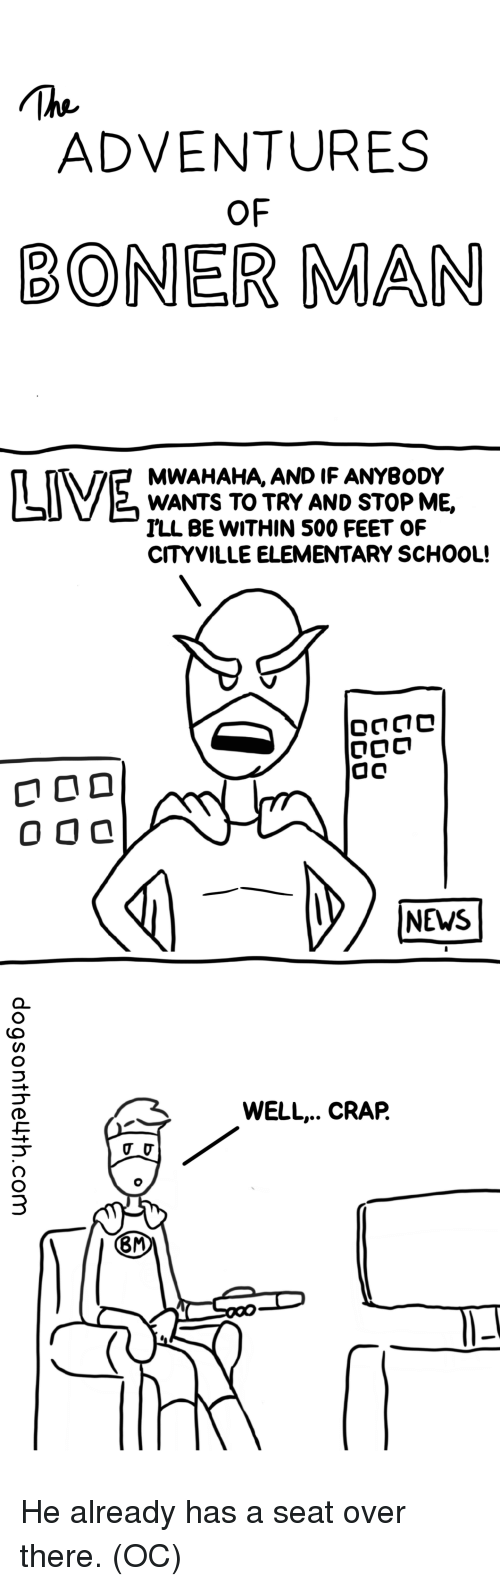 News, School, and Elementary: ADVENTURES  OF  BONER MAN  MWAHAHA, AND IF ANYBODY  WANTS TO TRY AND STOP ME,  ILL BE WITHIN 500 FEET OF  CITYVILLE ELEMENTARY SCHOOL!  NEWS  WELL.. CRAP.  8M He already has a seat over there. (OC)